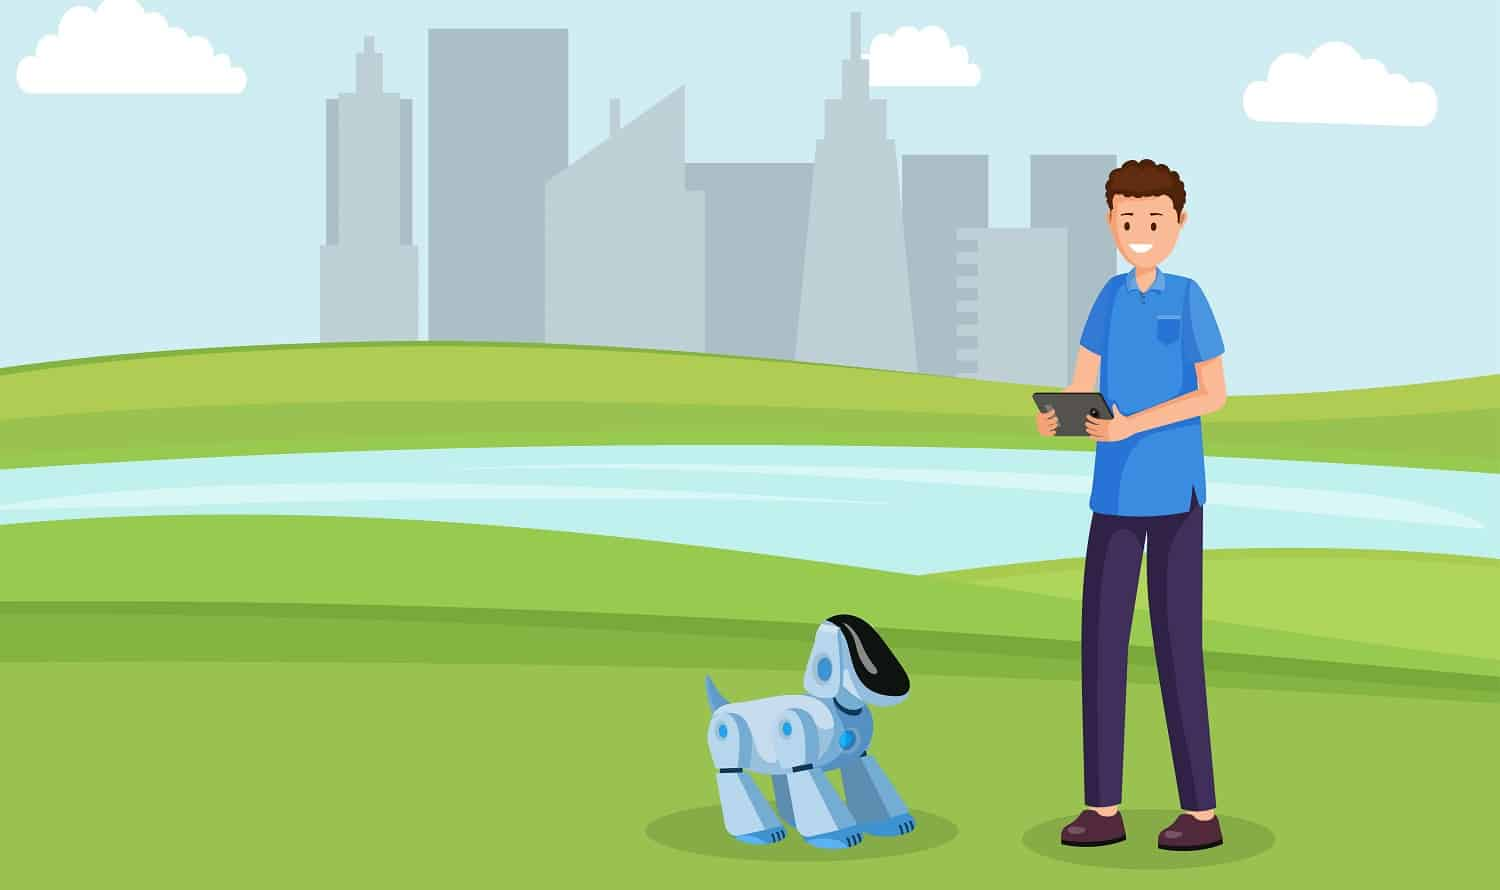 Robot dog toy flat vector illustration. Kid play with remote electronic puppy, pet outdoors cartoon character. Children futuristic entertainment, robotic friends, artificial intelligence in daily life